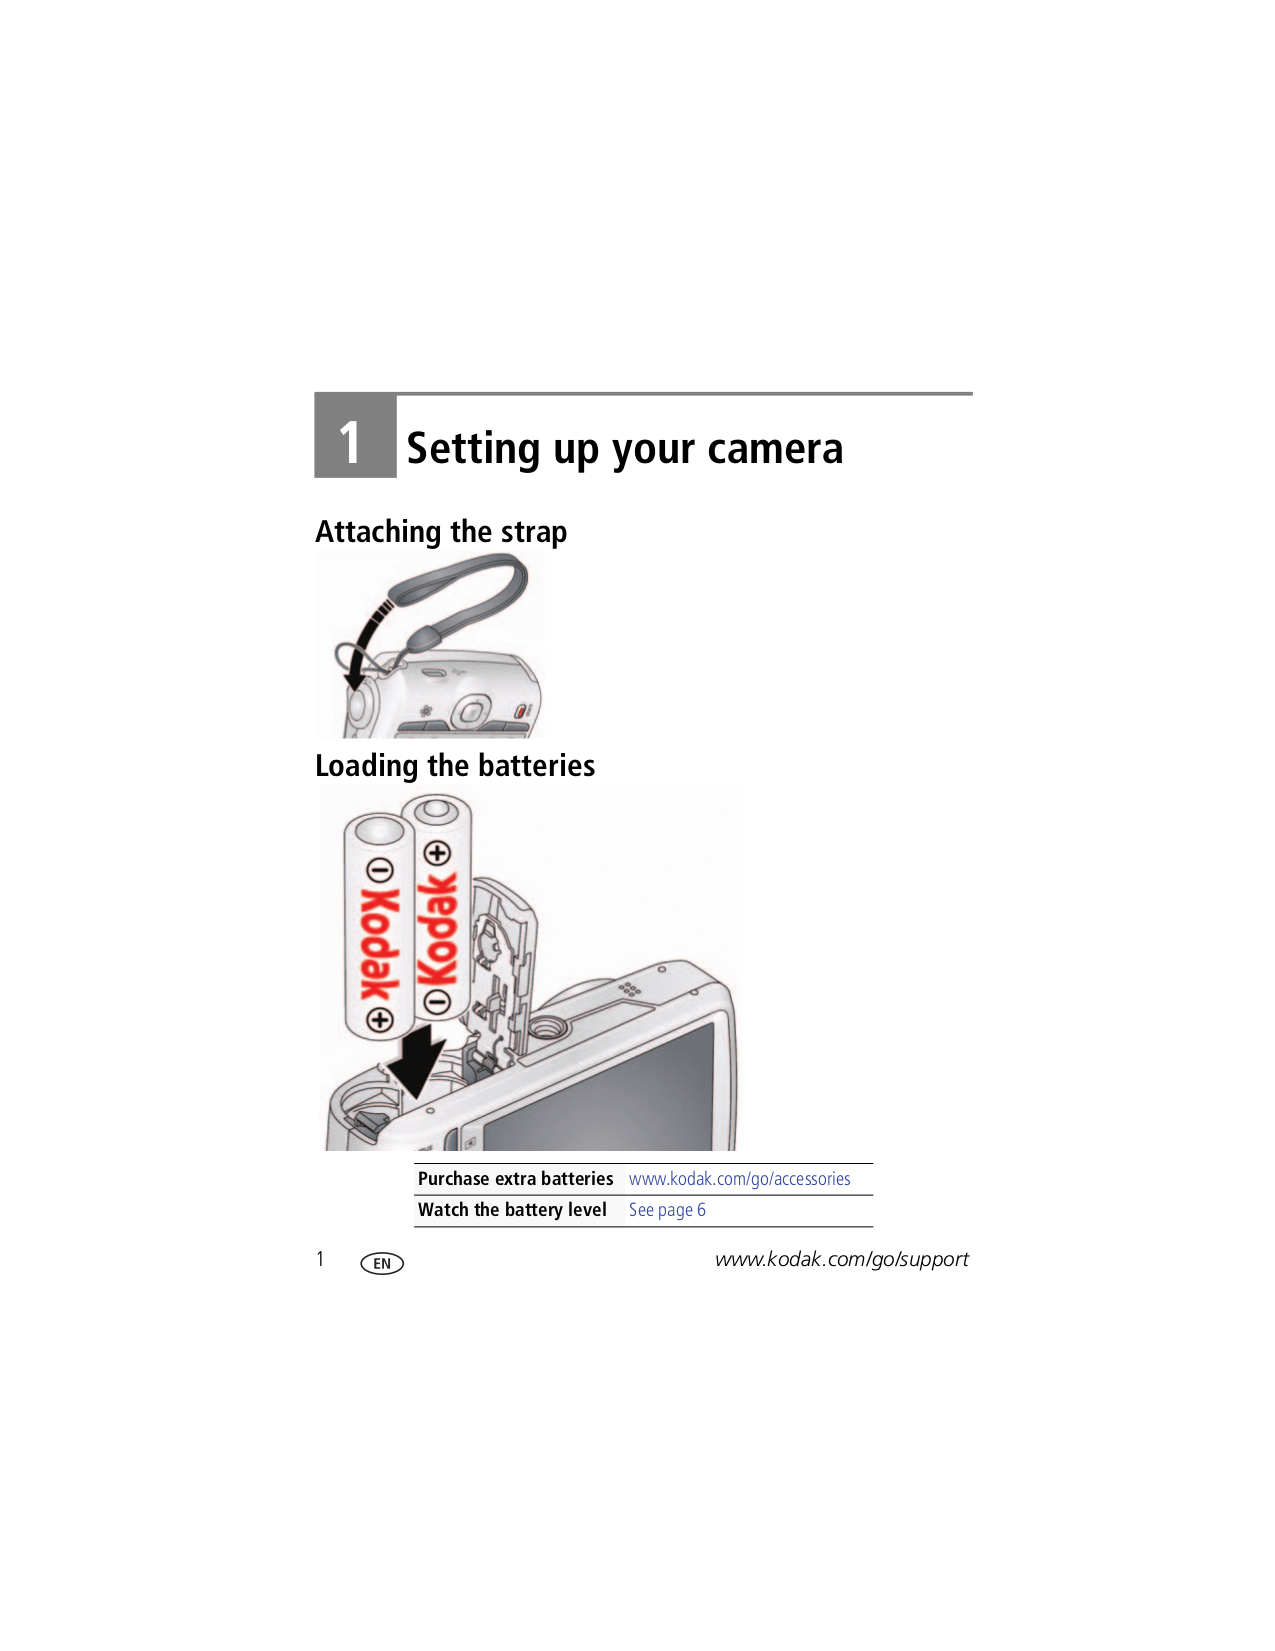 PDF manual for Kodak Digital Camera EasyShare C1530